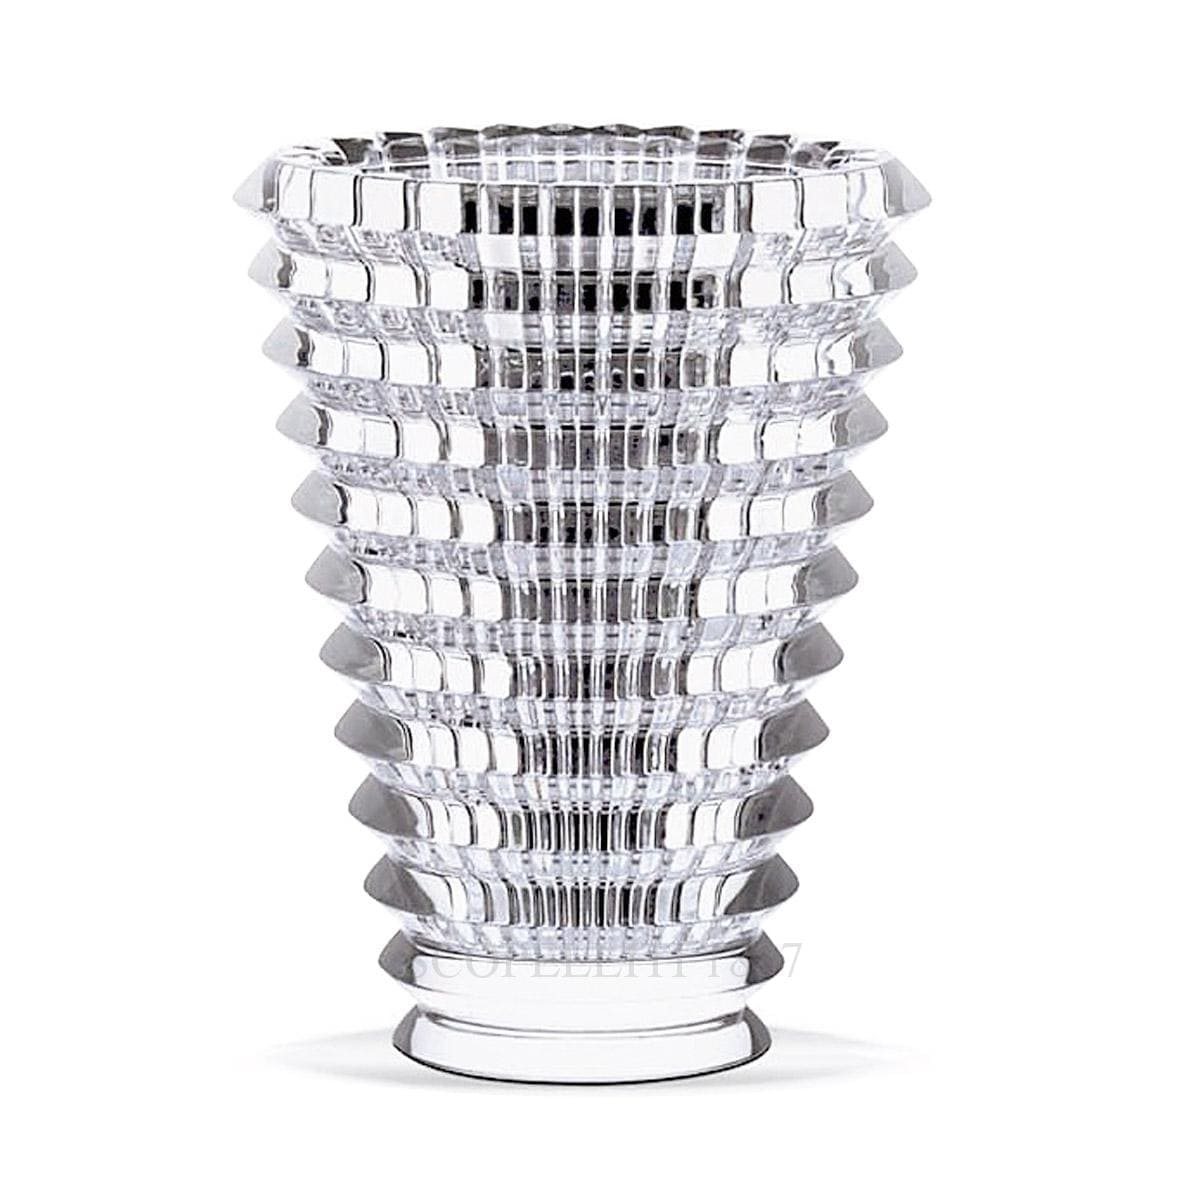 Baccarat Eye oval crystal Vase